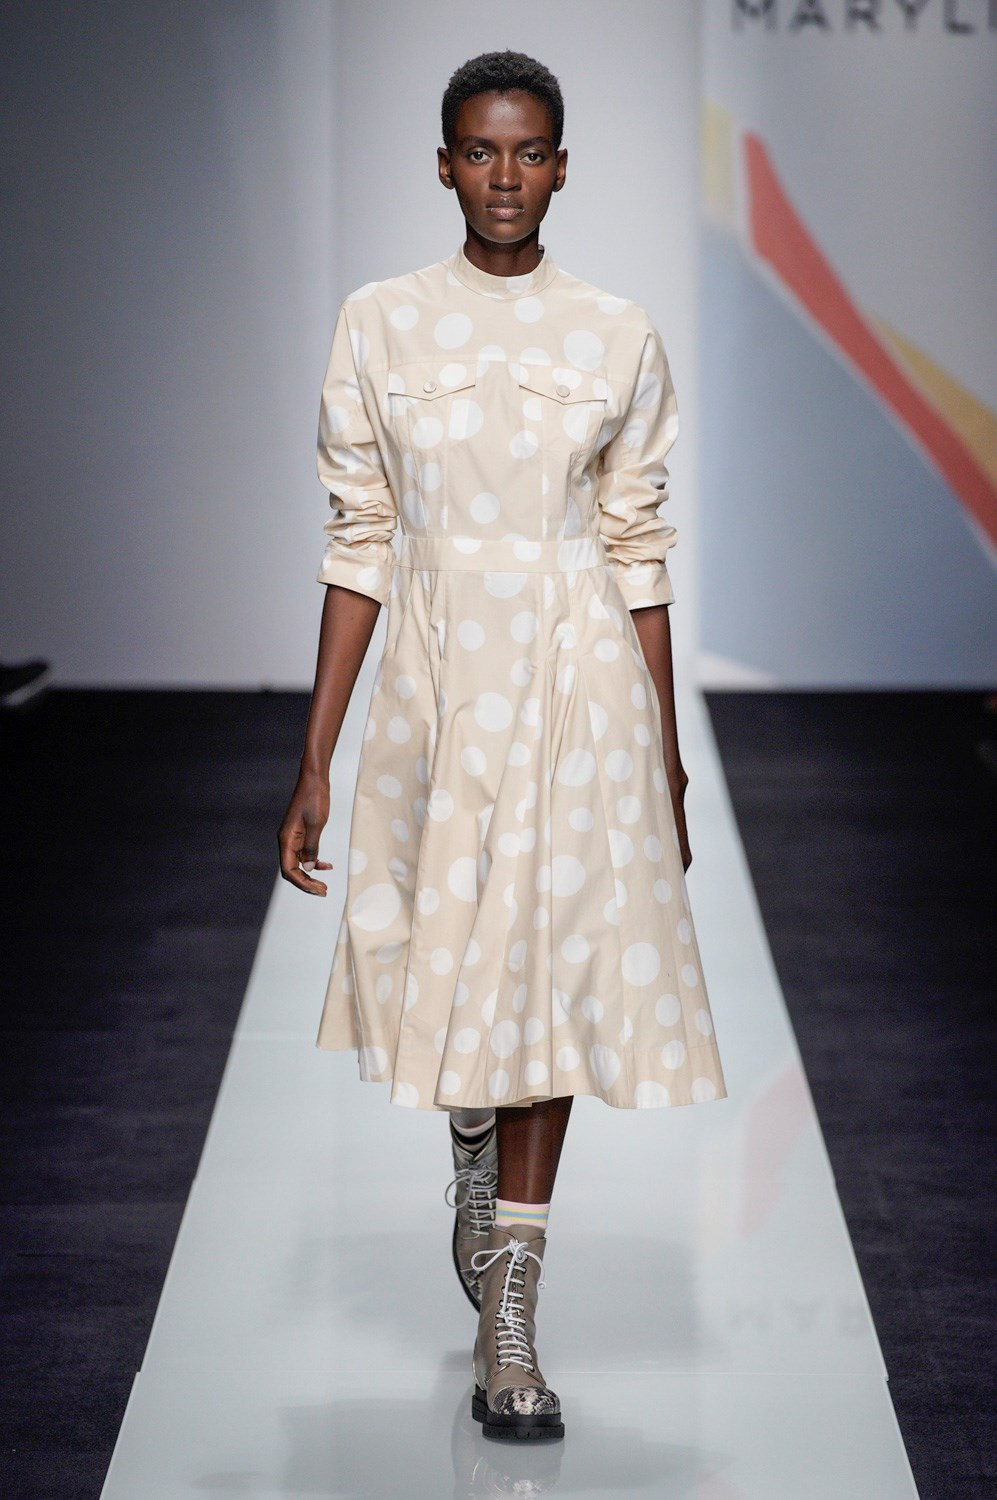 Maryling Spring 2020 Fashion Show